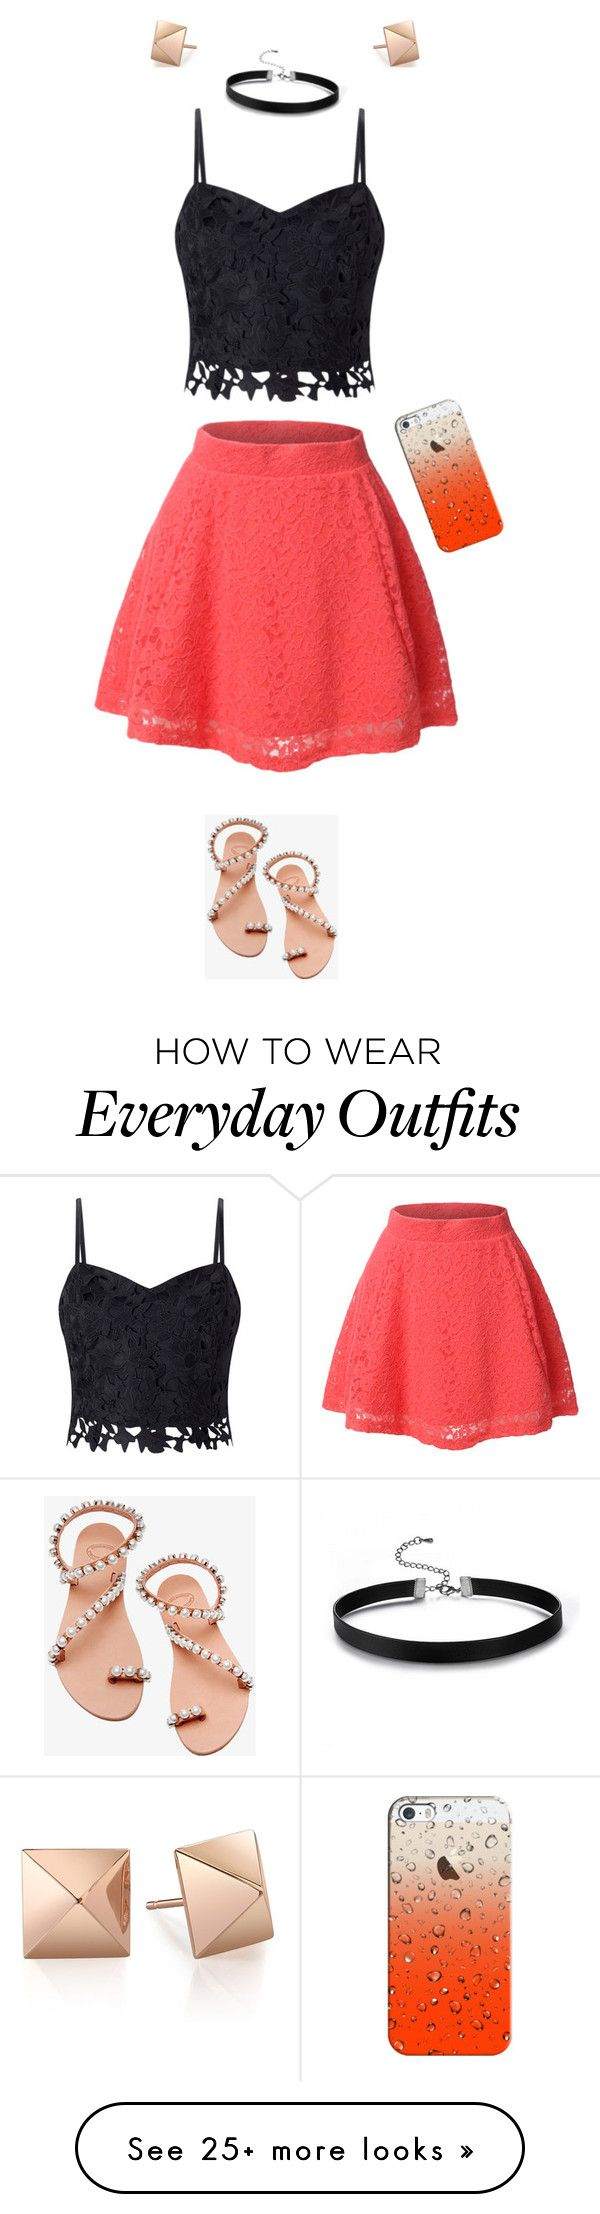 """""""Everyday outfit (designed by Isa)"""" by lizziep123 on Polyvore featuring LE3NO, Lipsy, Elina Linardaki and Casetify"""